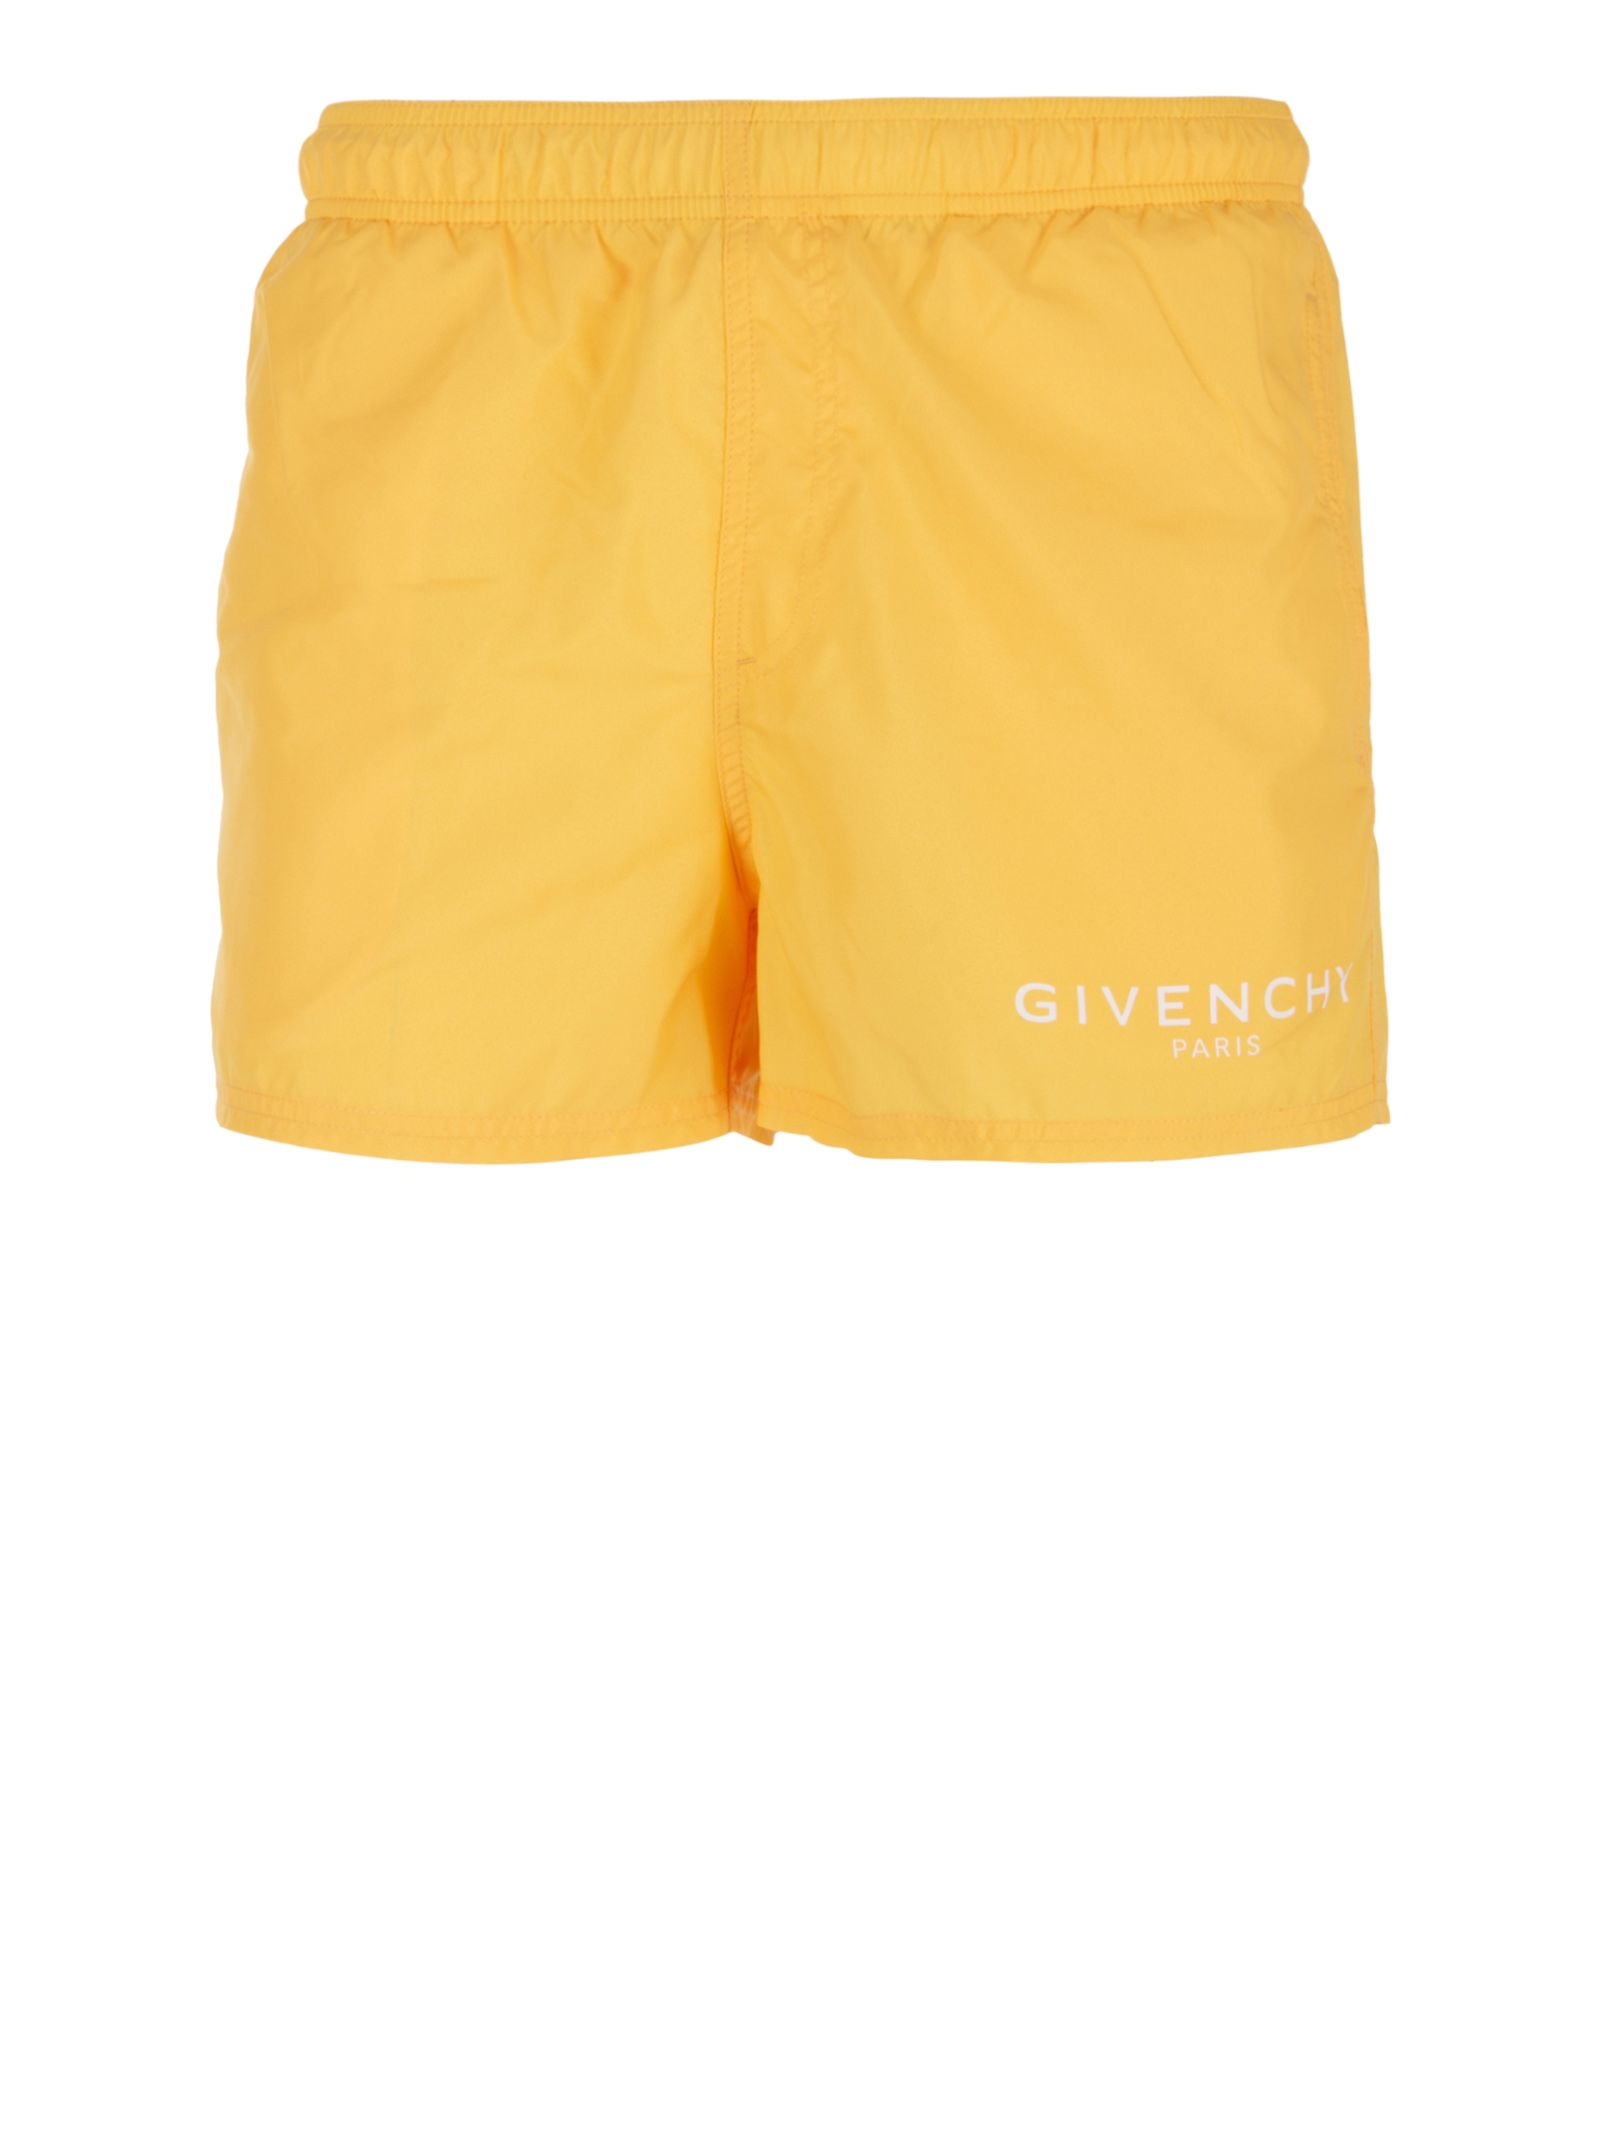 Givenchy Swimsuit